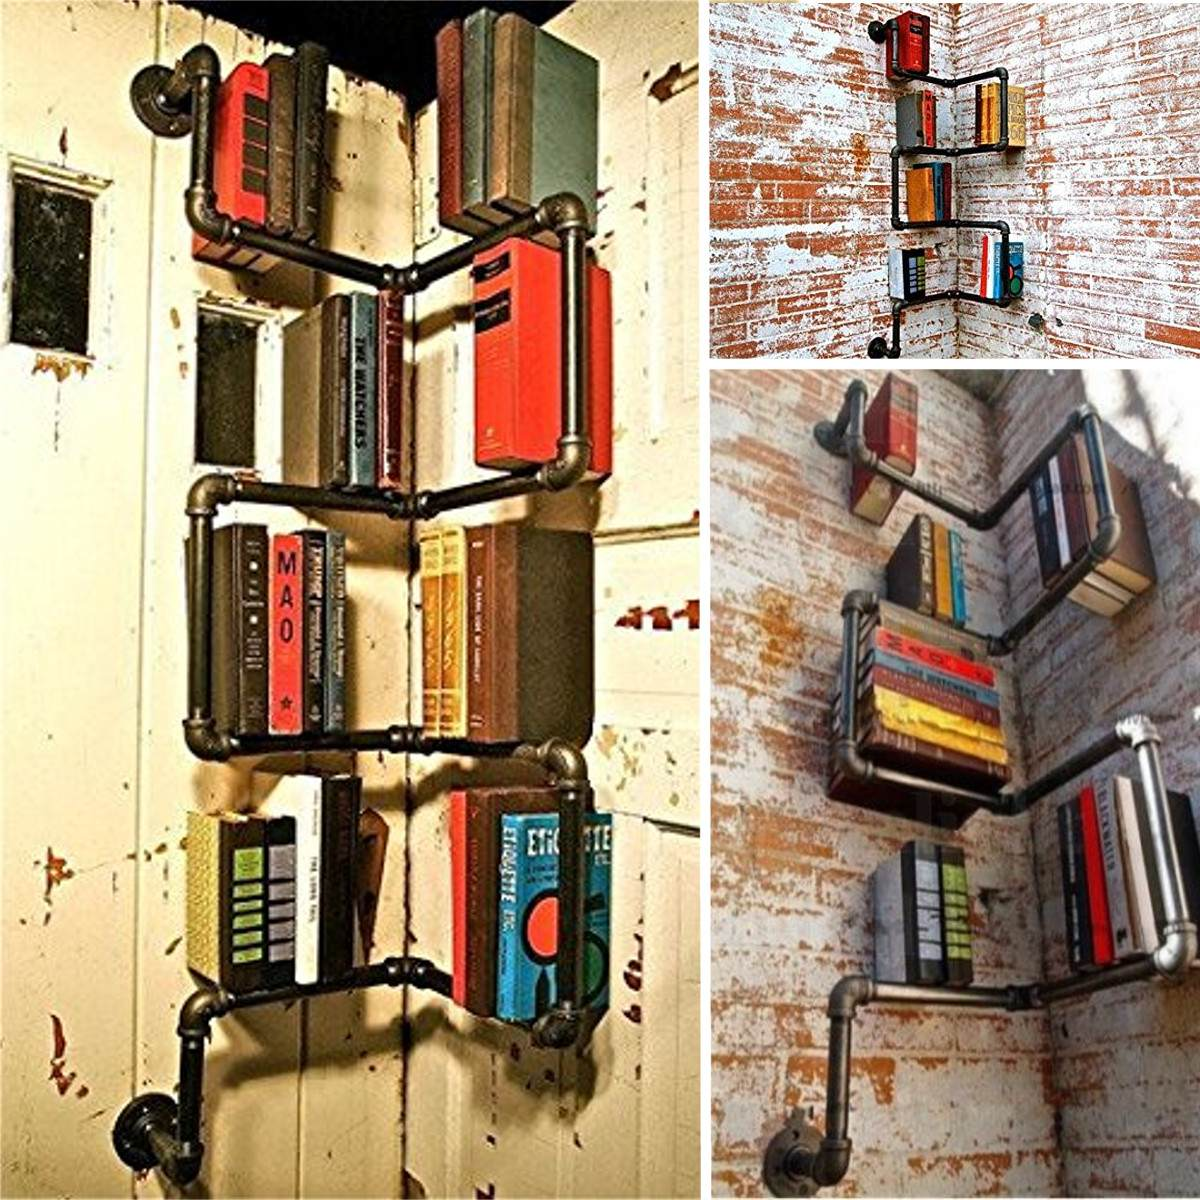 Industrial Urban Style Pipe Shelf Storage Shelving Book Wall Mount DIY Holder Black Iron Decoration